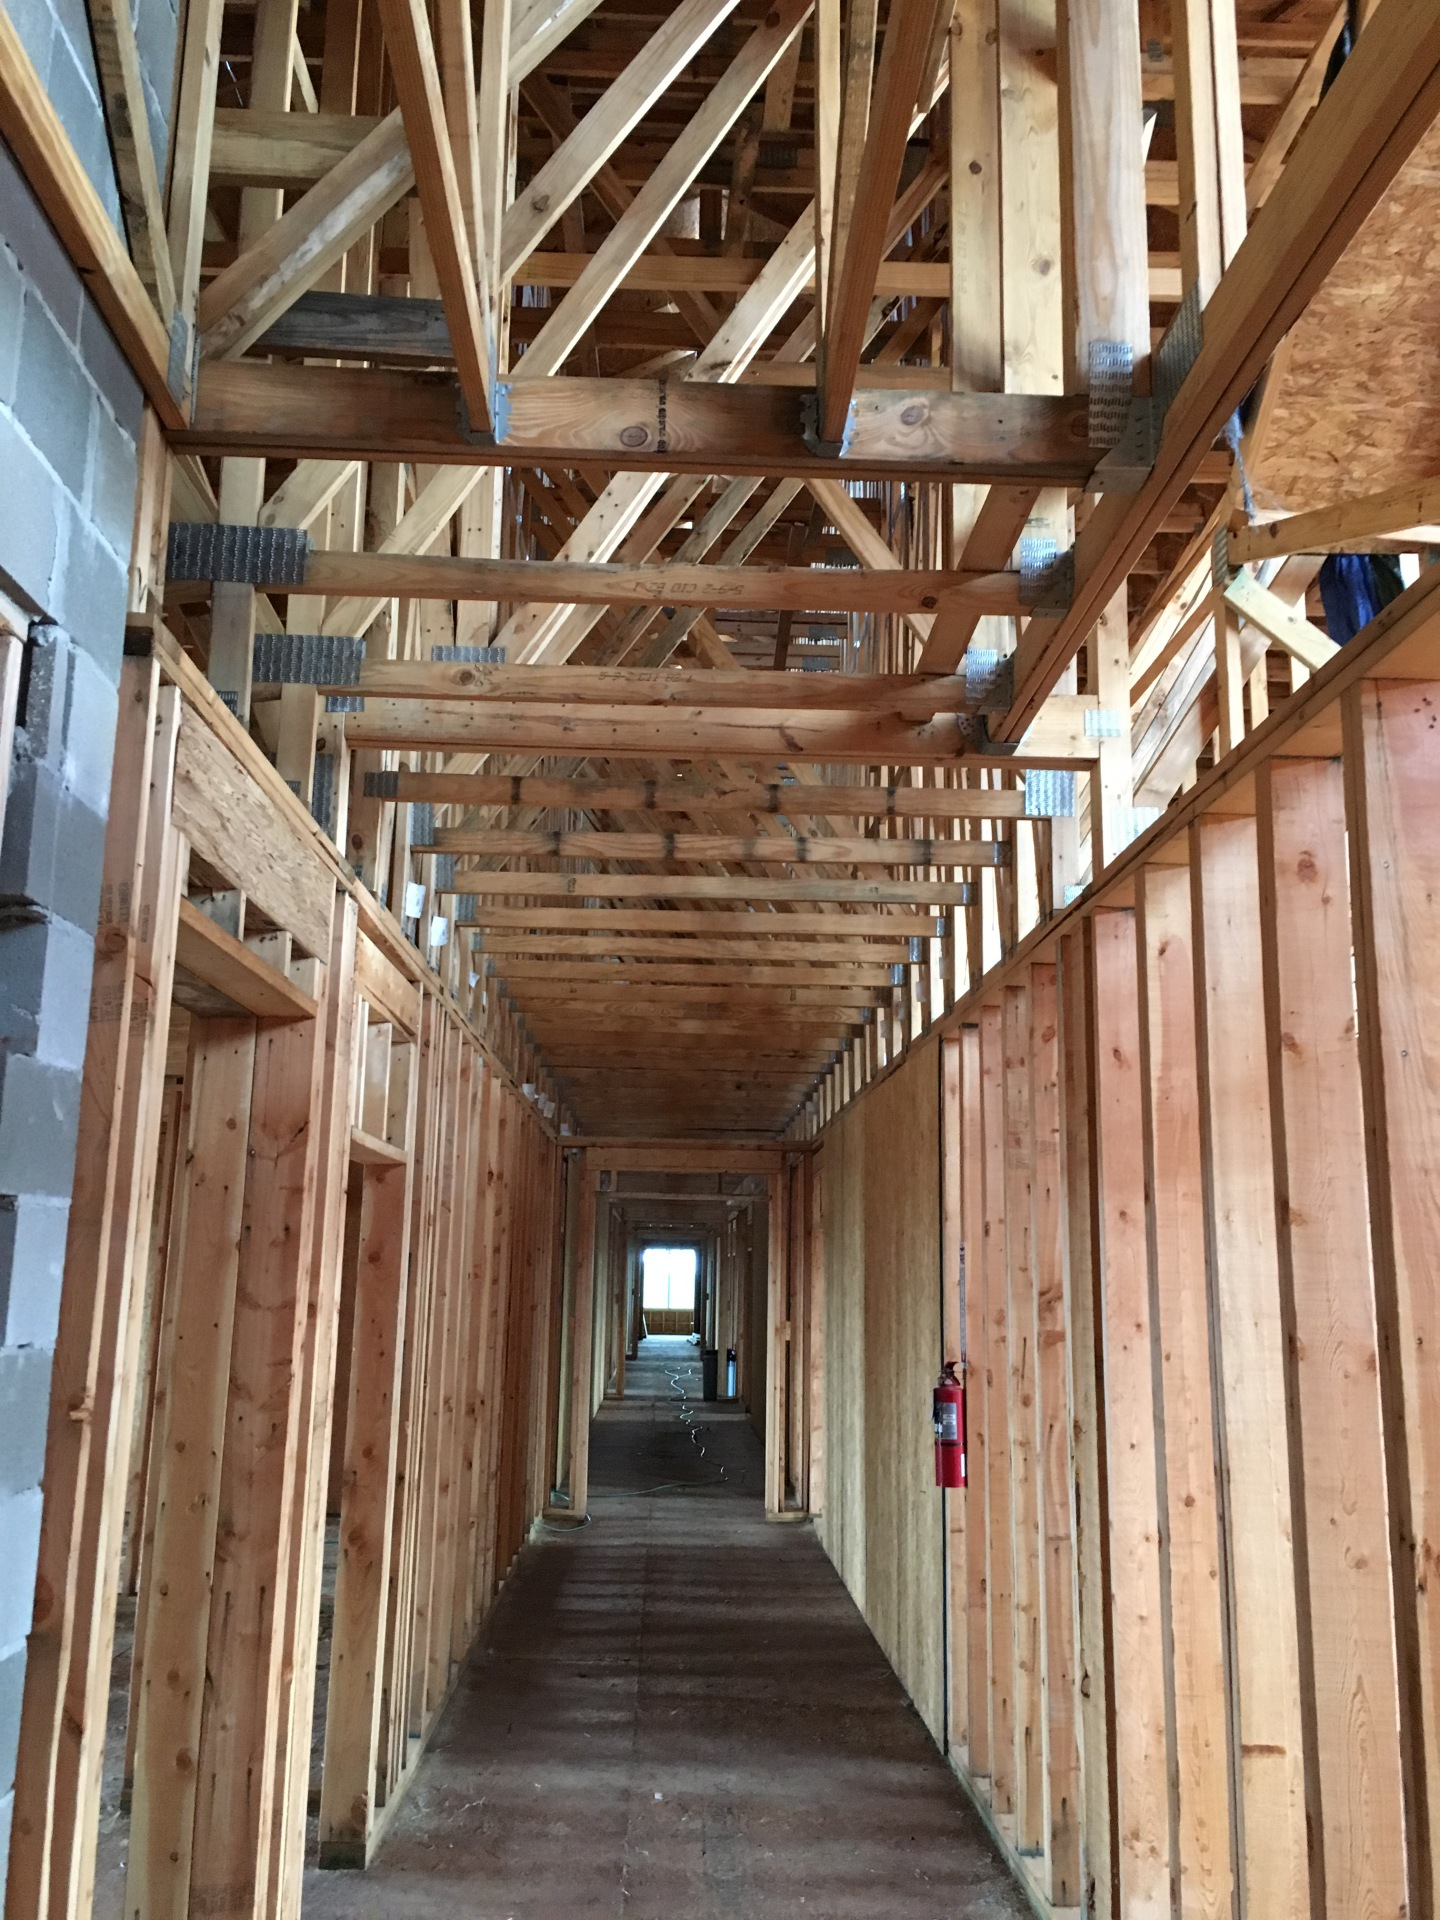 Drywall on Wood Framing